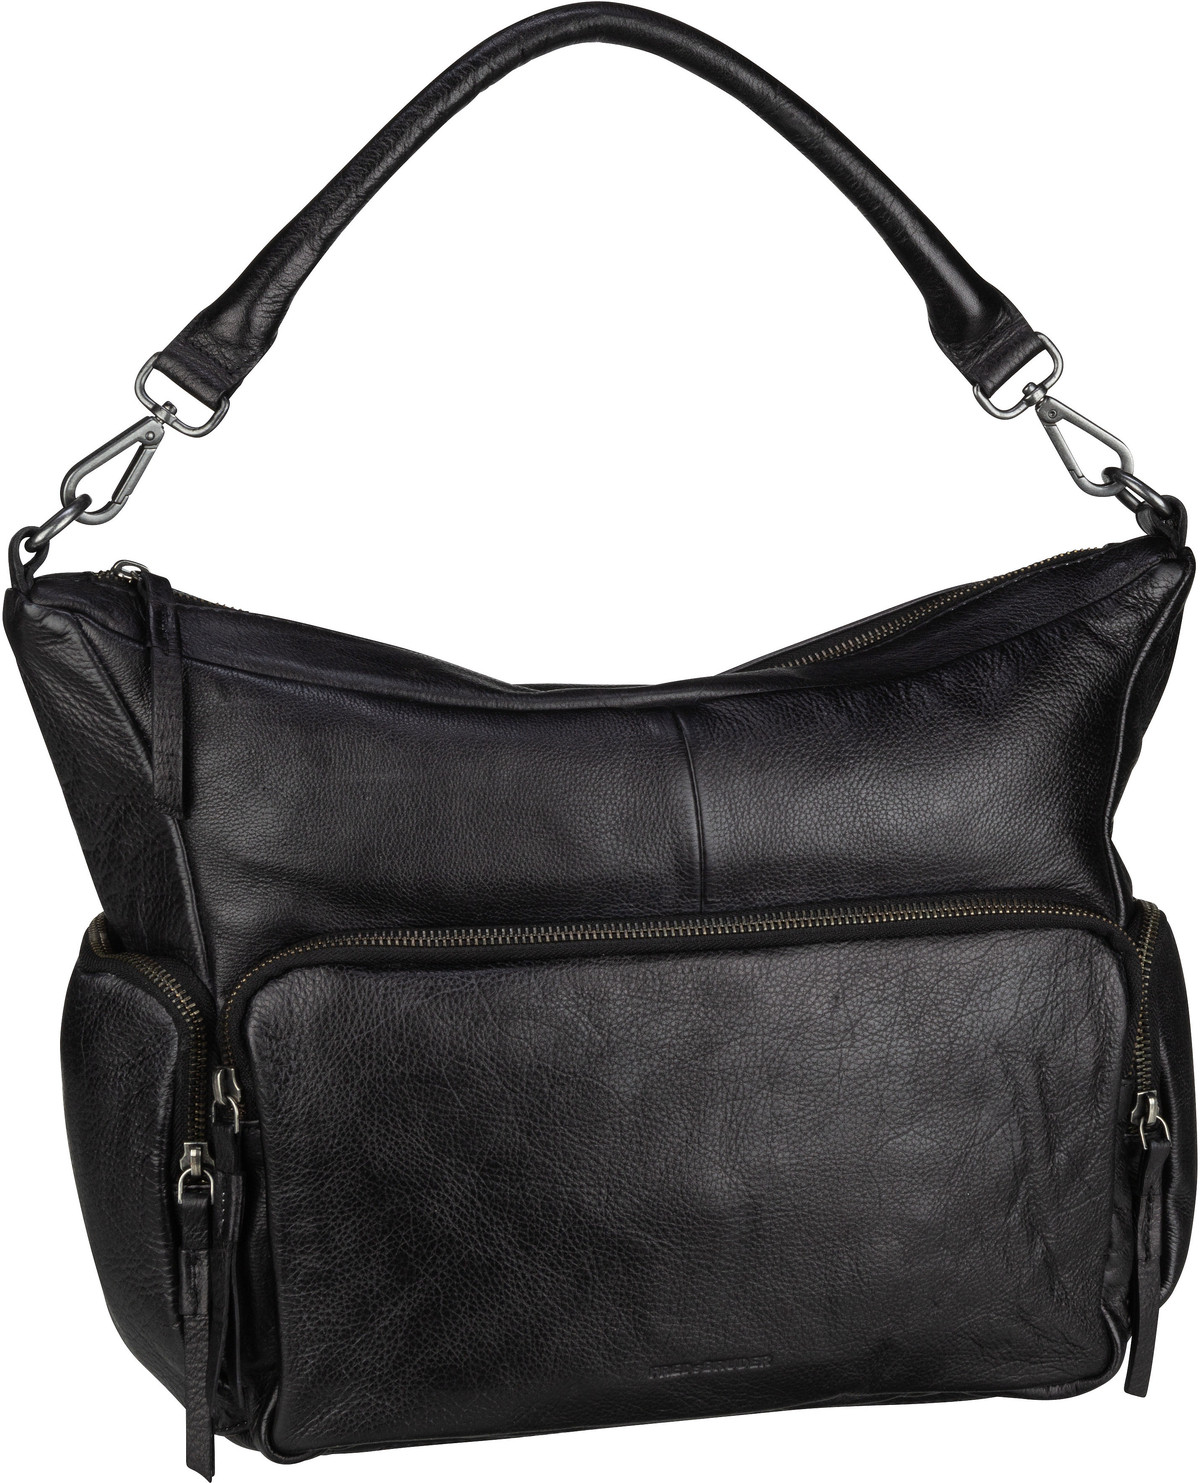 Handtasche Honeycomb Black